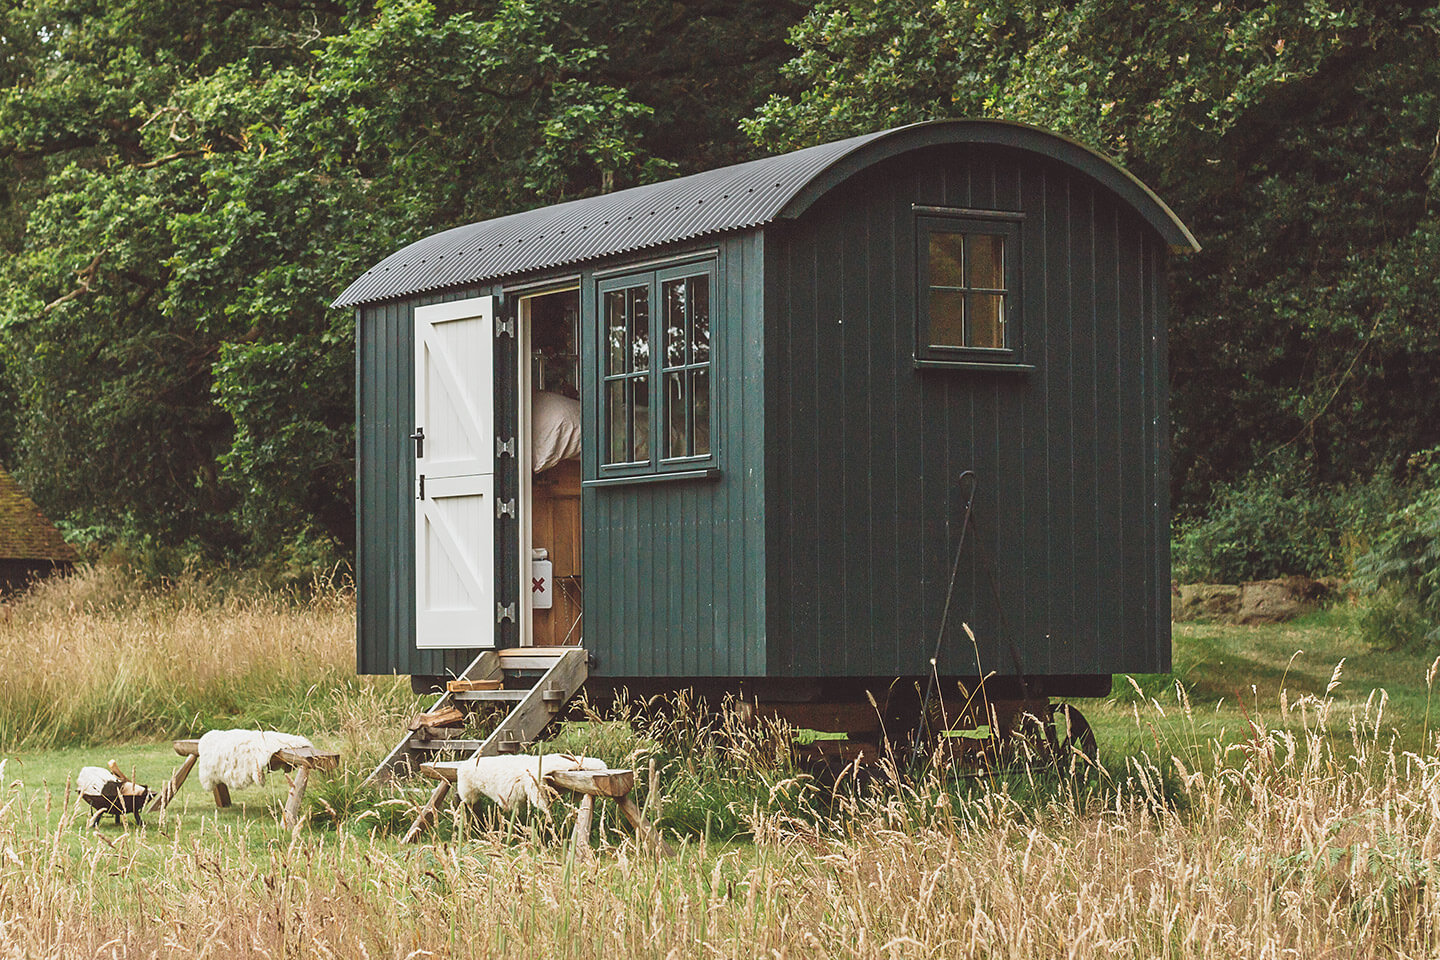 The Sussex Shepherd Hut